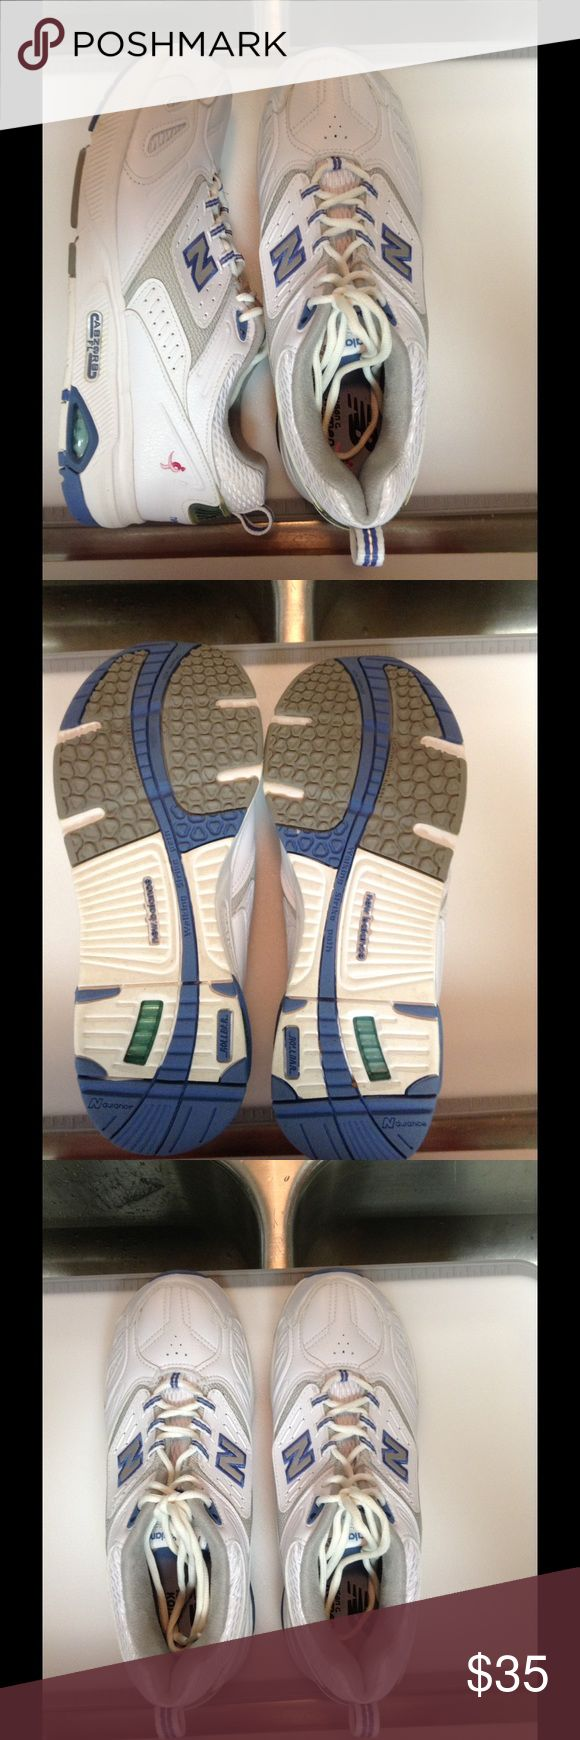 New Balance Size 9, Style WWW845WB New Balance Walking Shoes Size 9-2A 9N 9 N. Style WWW845WB.   I have a very narrow foot, but these are a little wide for me. Worn 1 time in office work.  Perfect condition. Non smoking and pet free home. New Balance Shoes Athletic Shoes